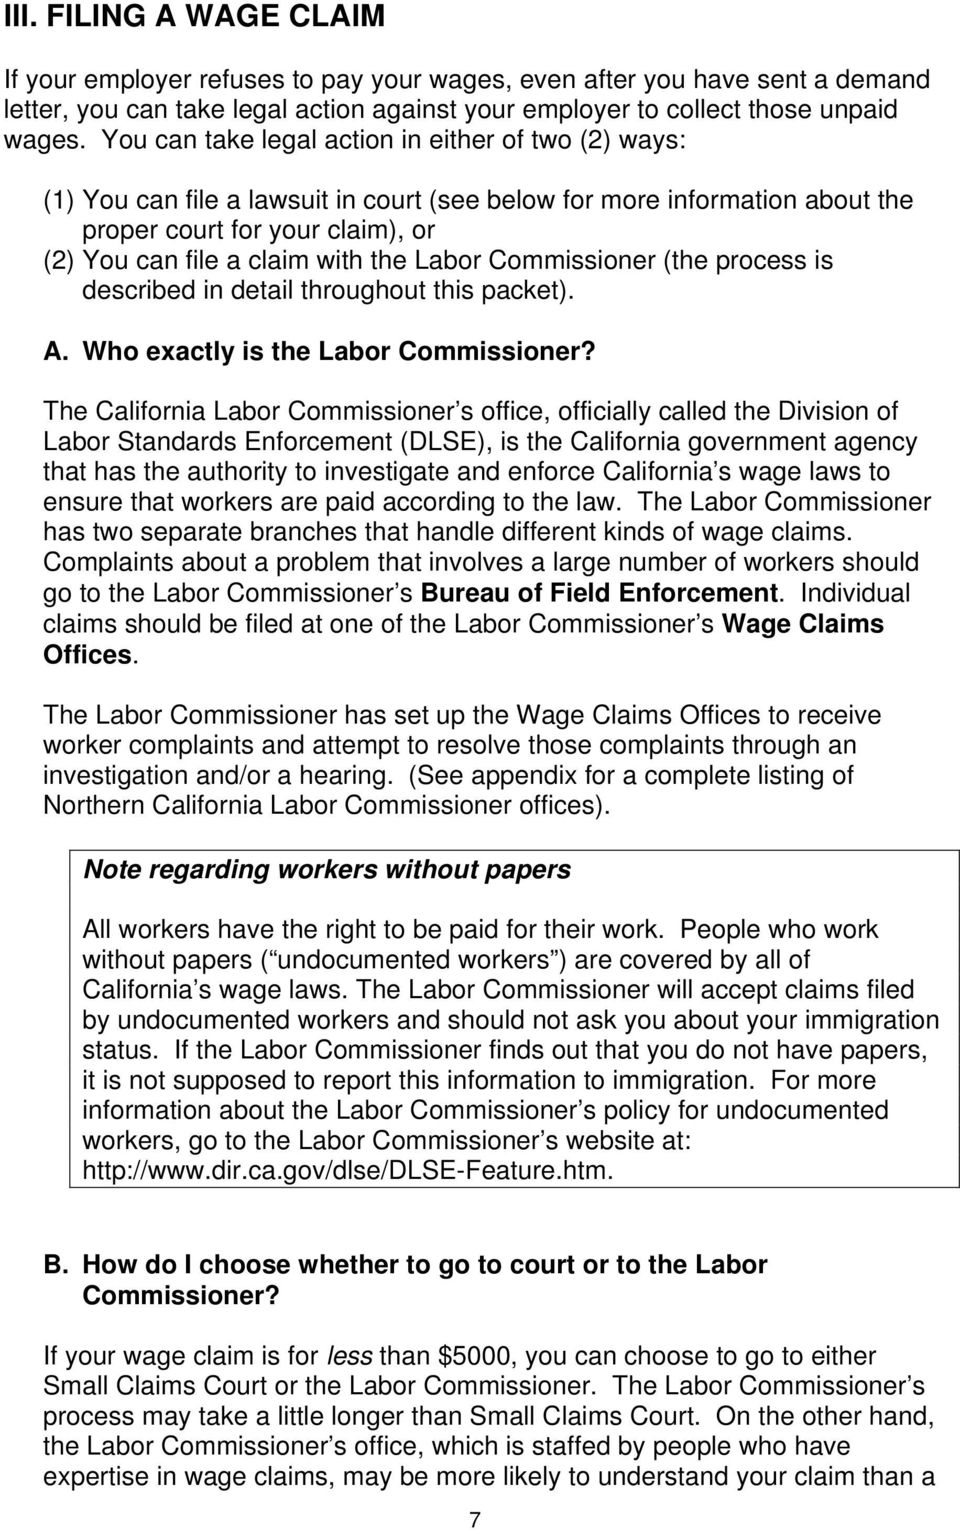 Labor Commissioner (the process is described in detail throughout this packet). A. Who exactly is the Labor Commissioner?